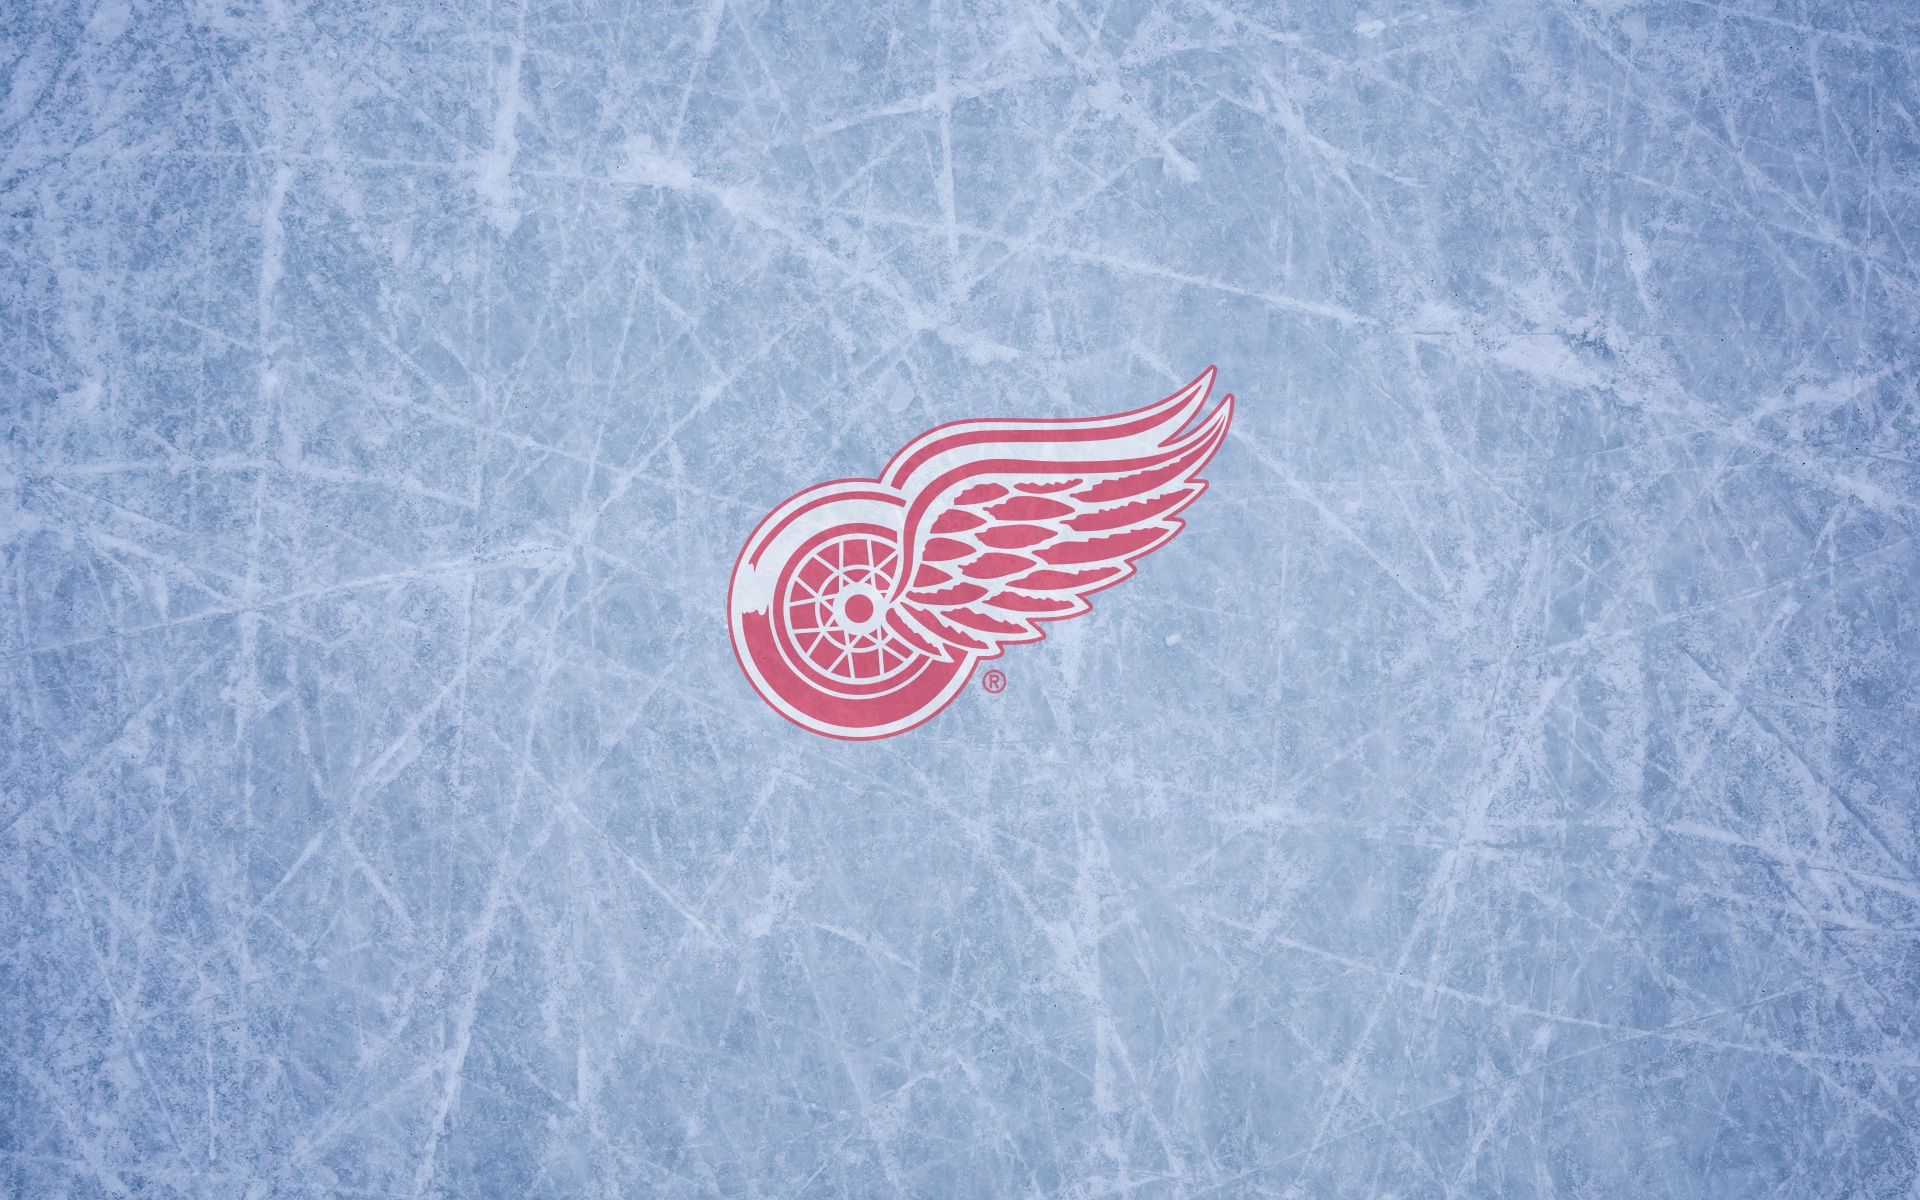 Detroit Red Wings Wallpaper Logo On The Ice 1920x1200